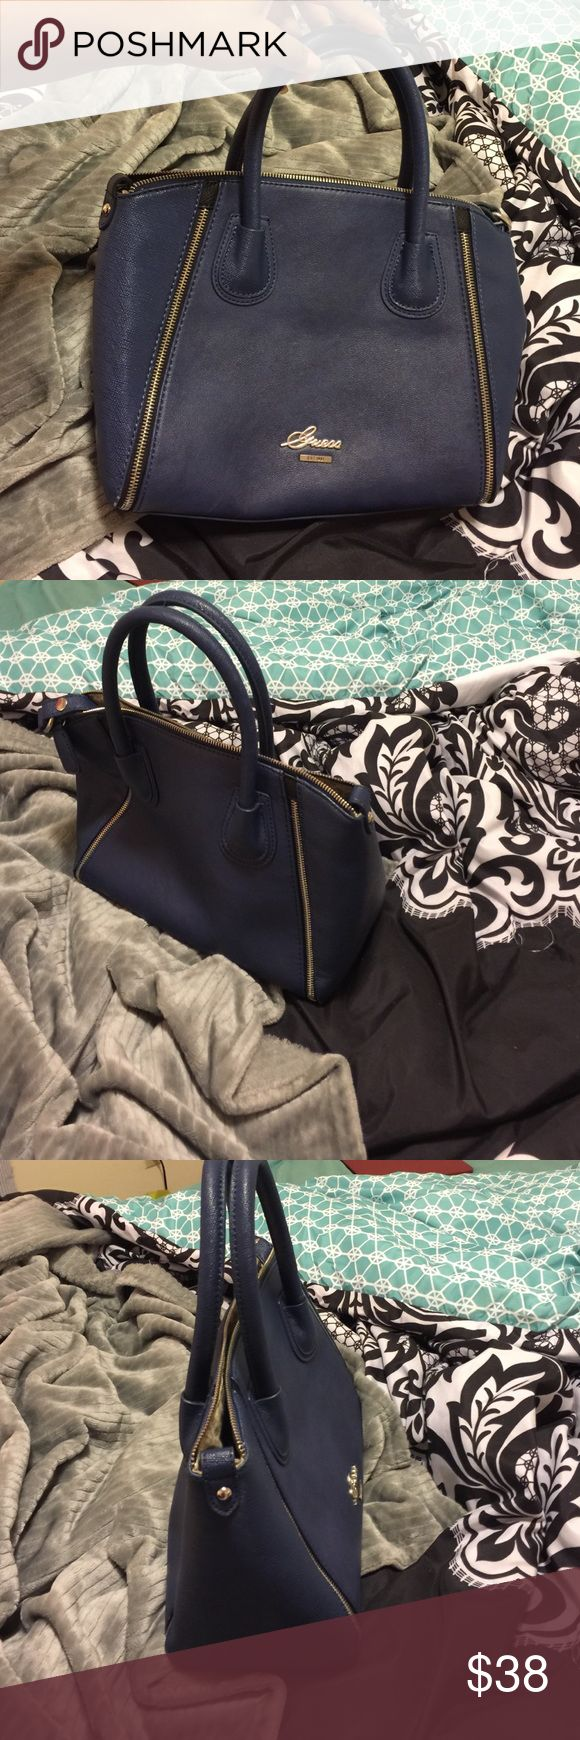 Guess handbag Brand new authentic guess bag. It has no flaws. It's beautiful because of the color 😍 feel free to make an offer . Designer handbags good quality. Just like Aldo  or Zara Guess Bags Satchels